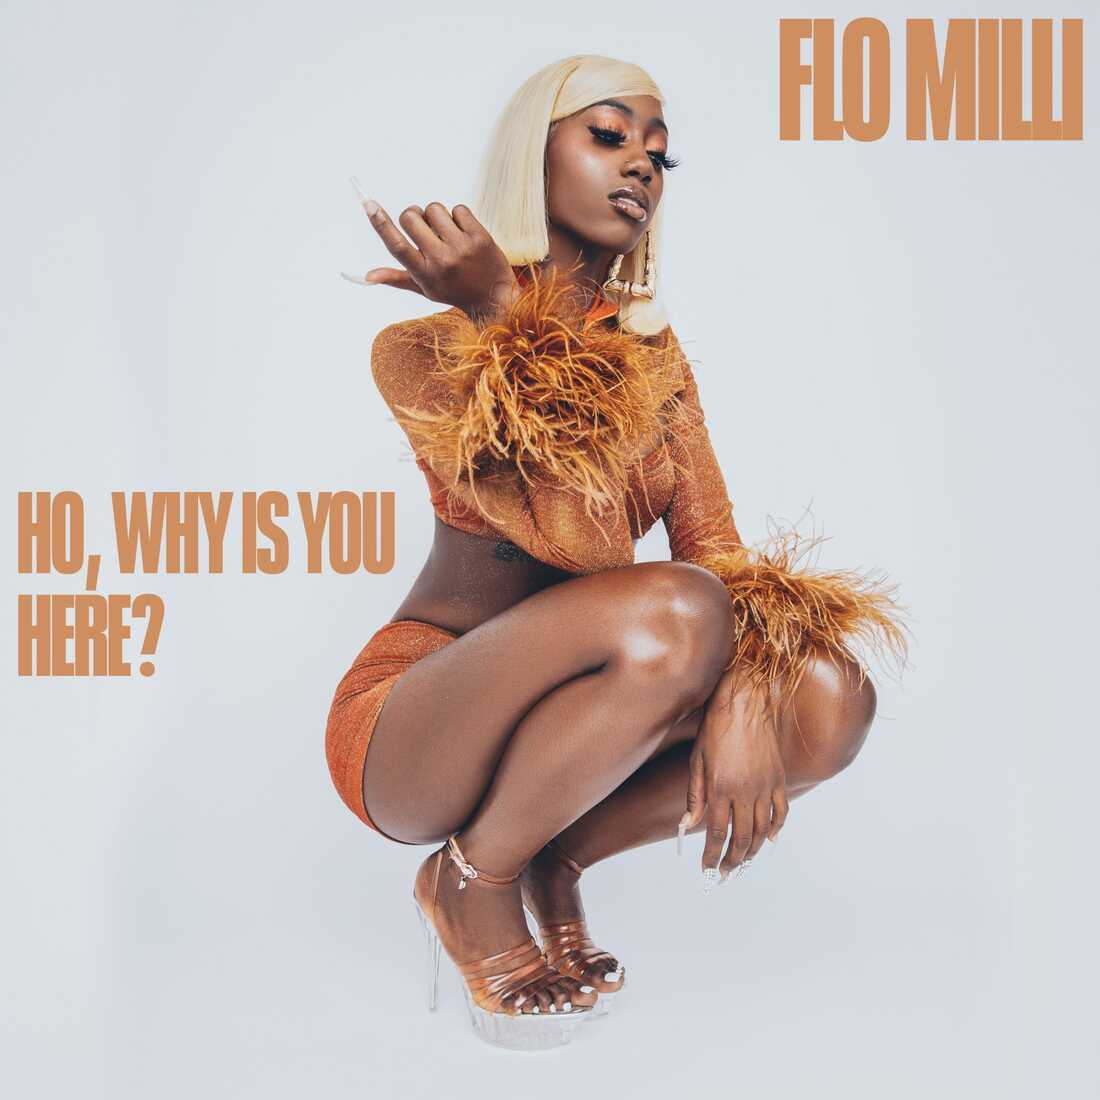 Flo Milli, Ho, Why Is You Here?